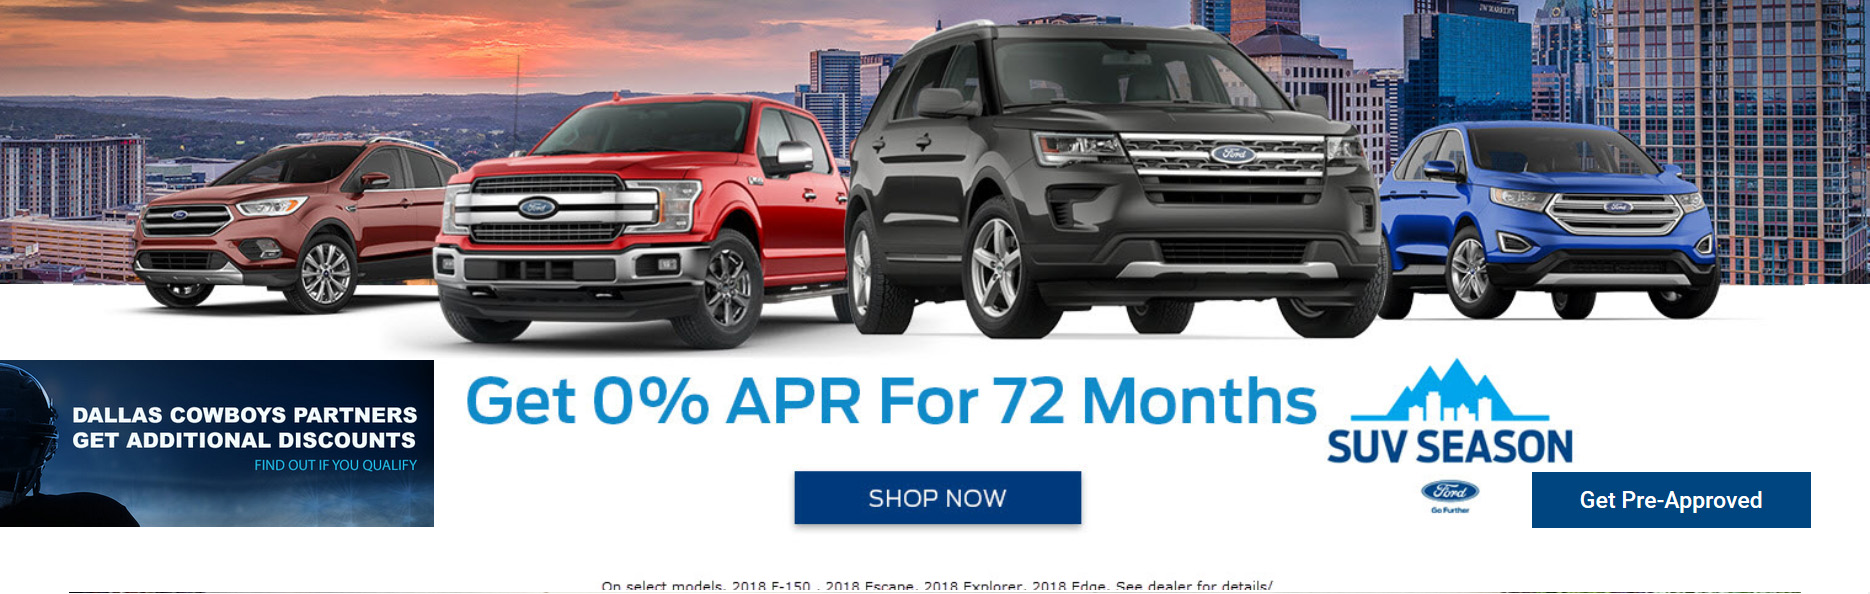 Five Star Ford Plano >> Sam Pack's Five Star Ford of Plano: New & Used Ford ...